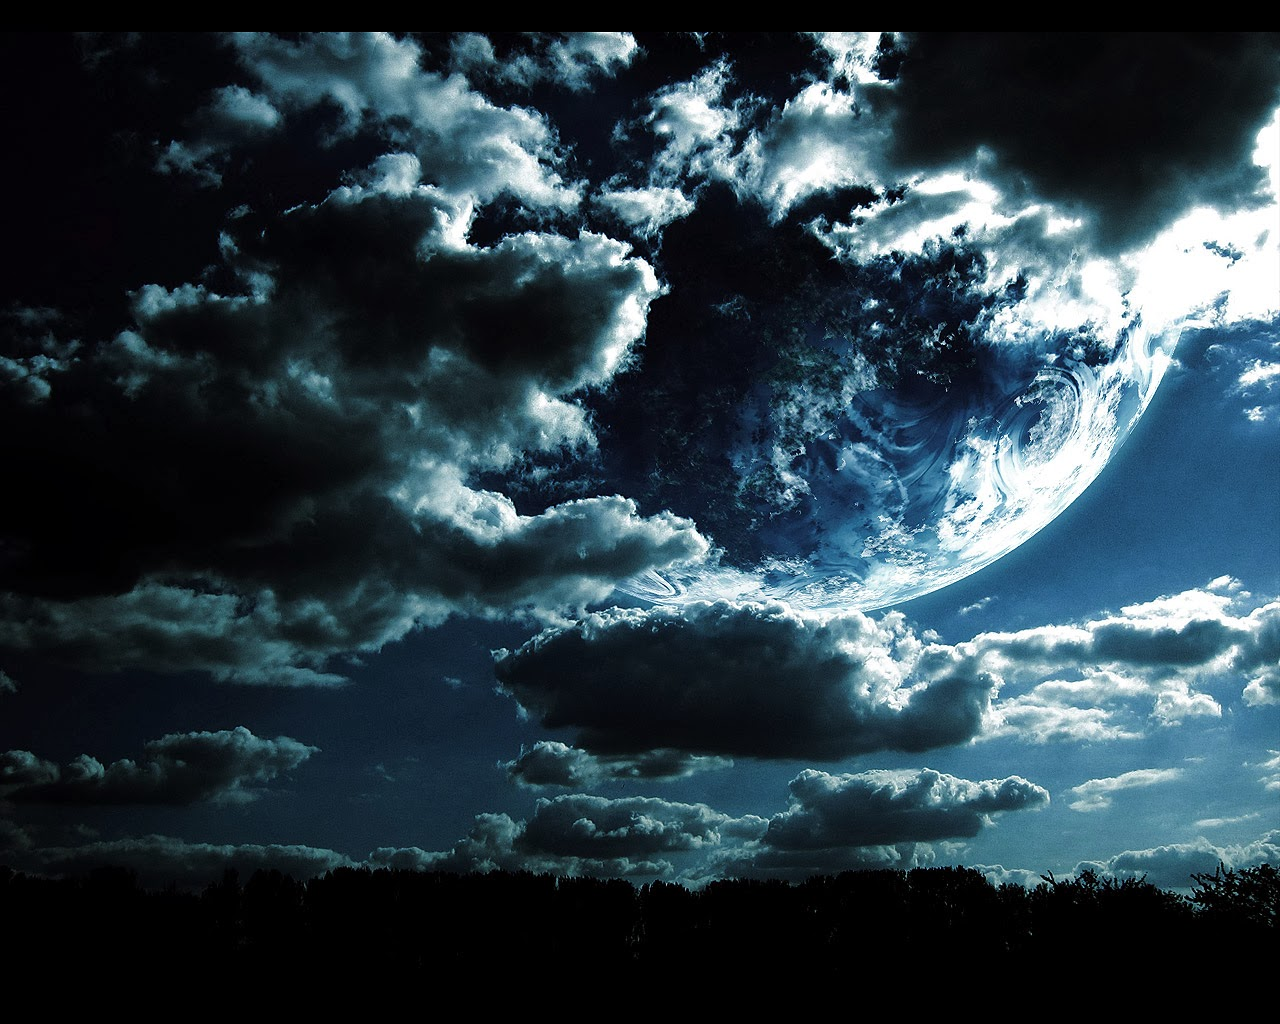 Wallpapers HQ - 18 Fantasy-Astronomy HD Wallpapers - 1001Best Wallpapers